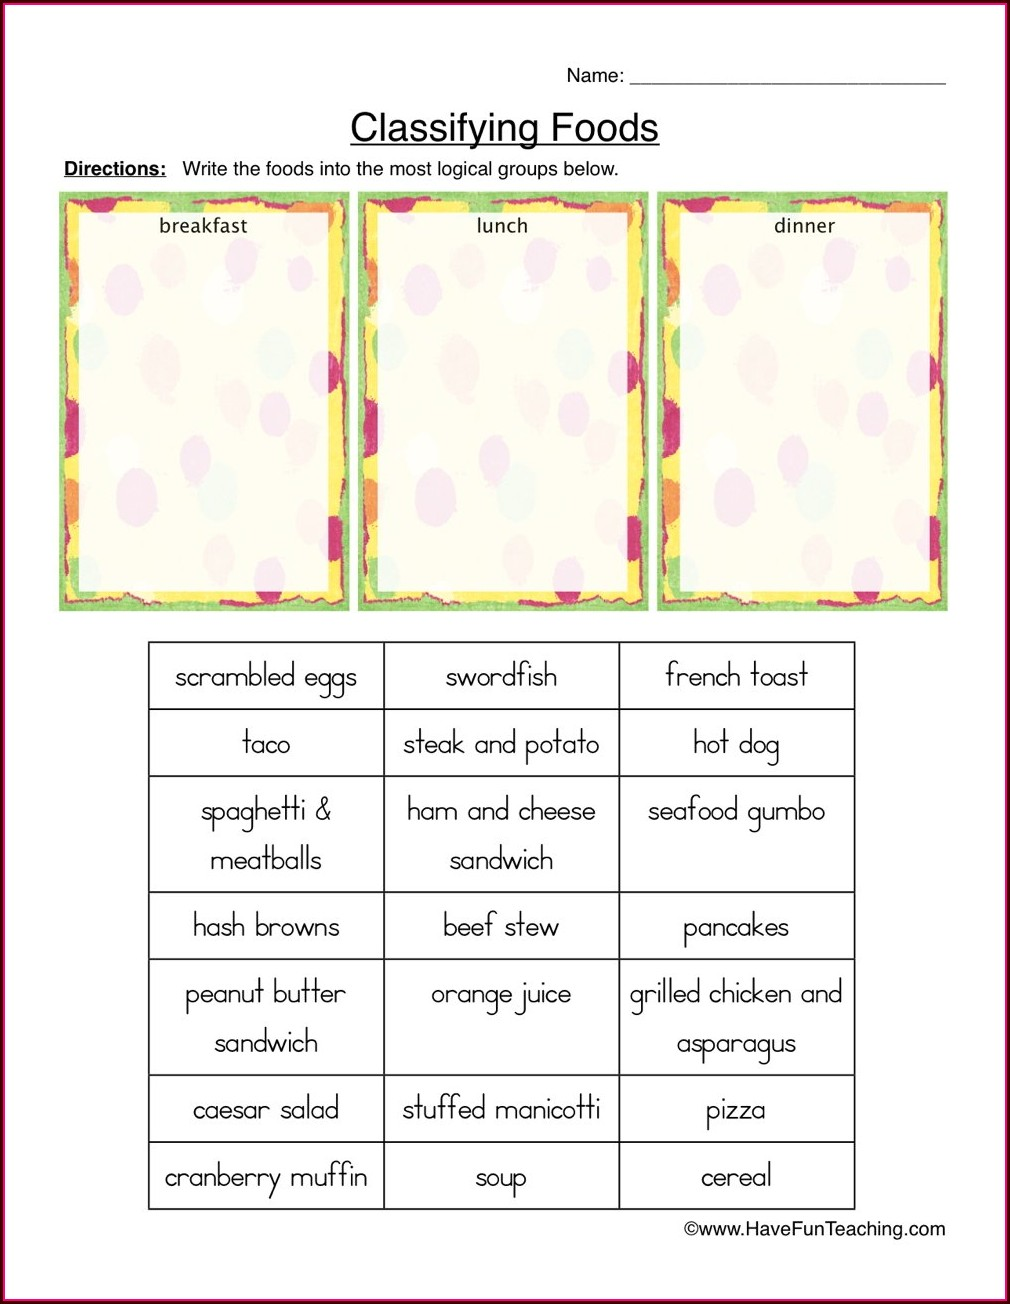 Worksheet On Food Groups For Grade 1